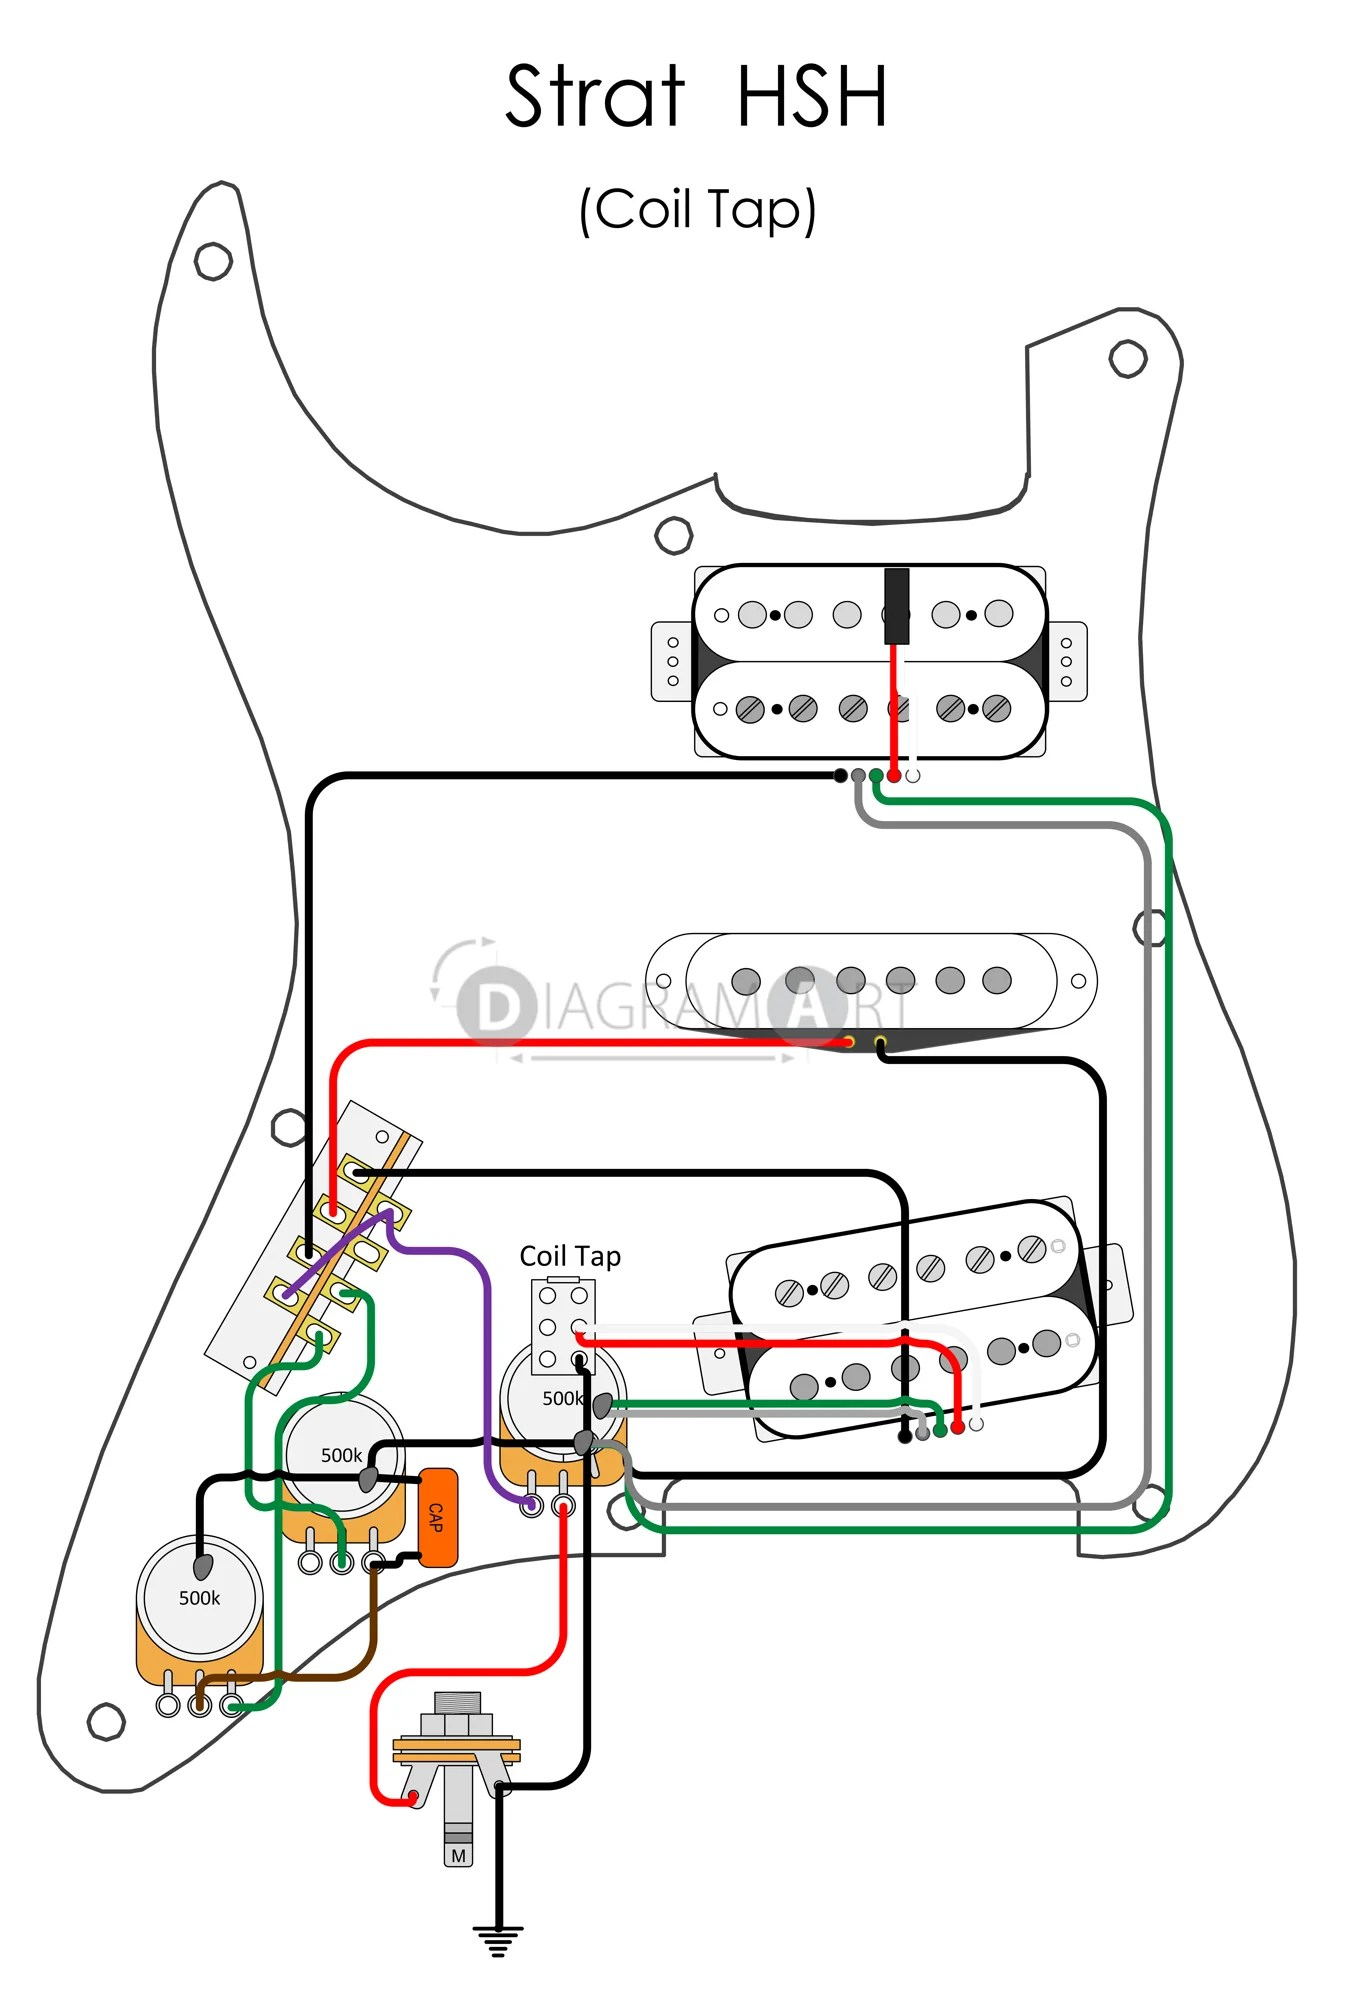 hight resolution of hsh wiring diagram wiring diagrams lolstrat wiring diagram hsh today wiring diagram update seymour duncan hsh